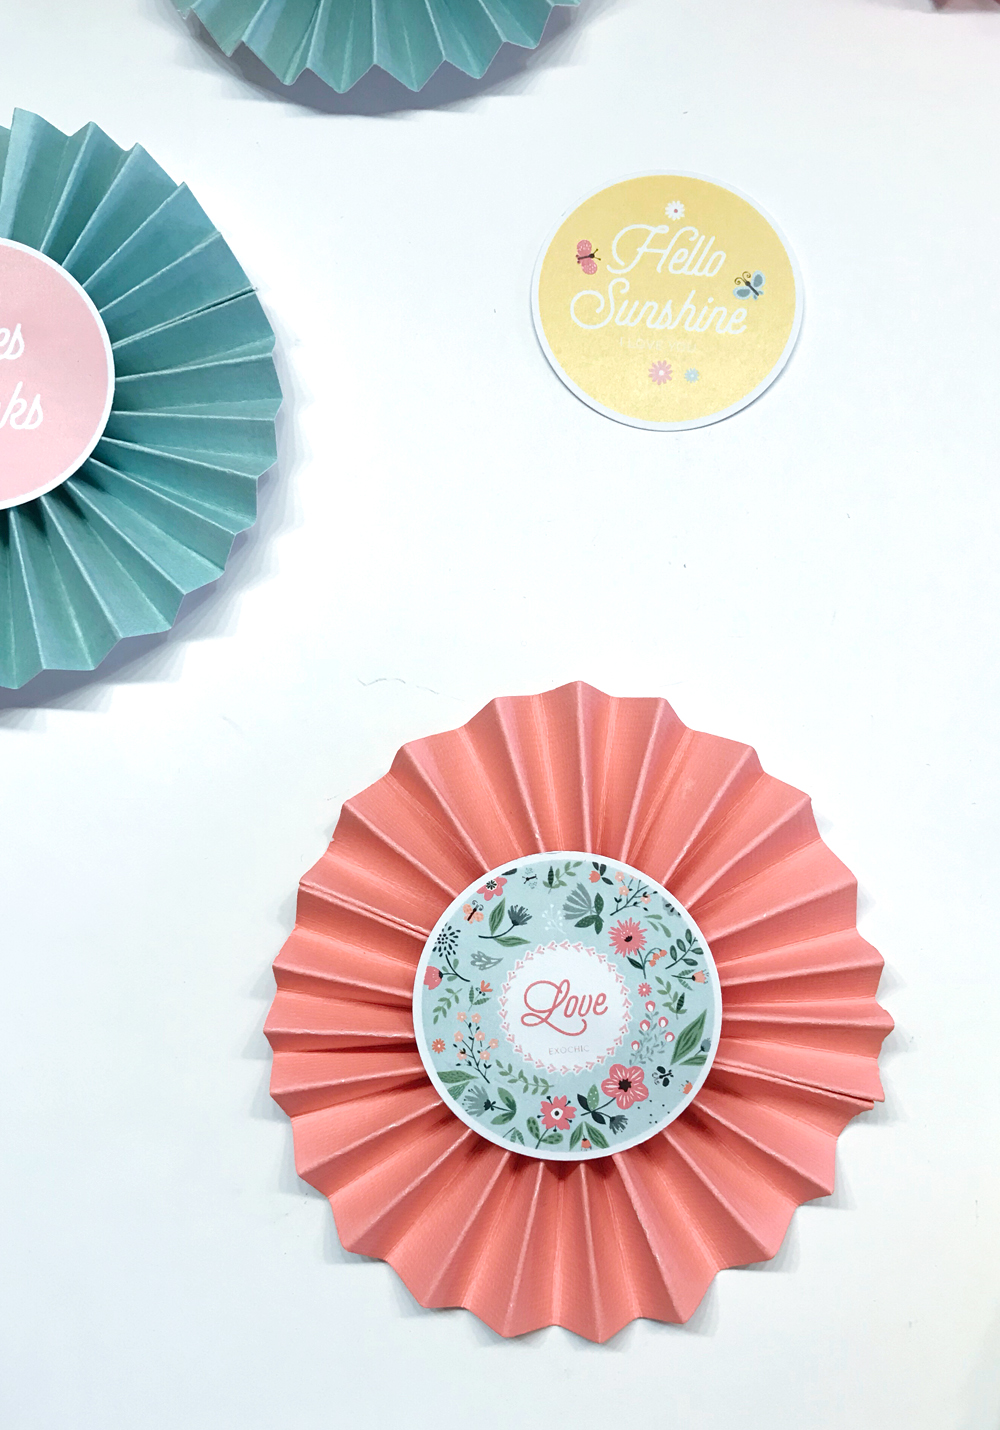 Air Chic Design:disque externe:EXOChic:1 -POSTS:1 - ARTICLES:2018:03 - MARS:06 DIY PAQUES:image bloc:DIY Cocarde paques exochic 3.jpg